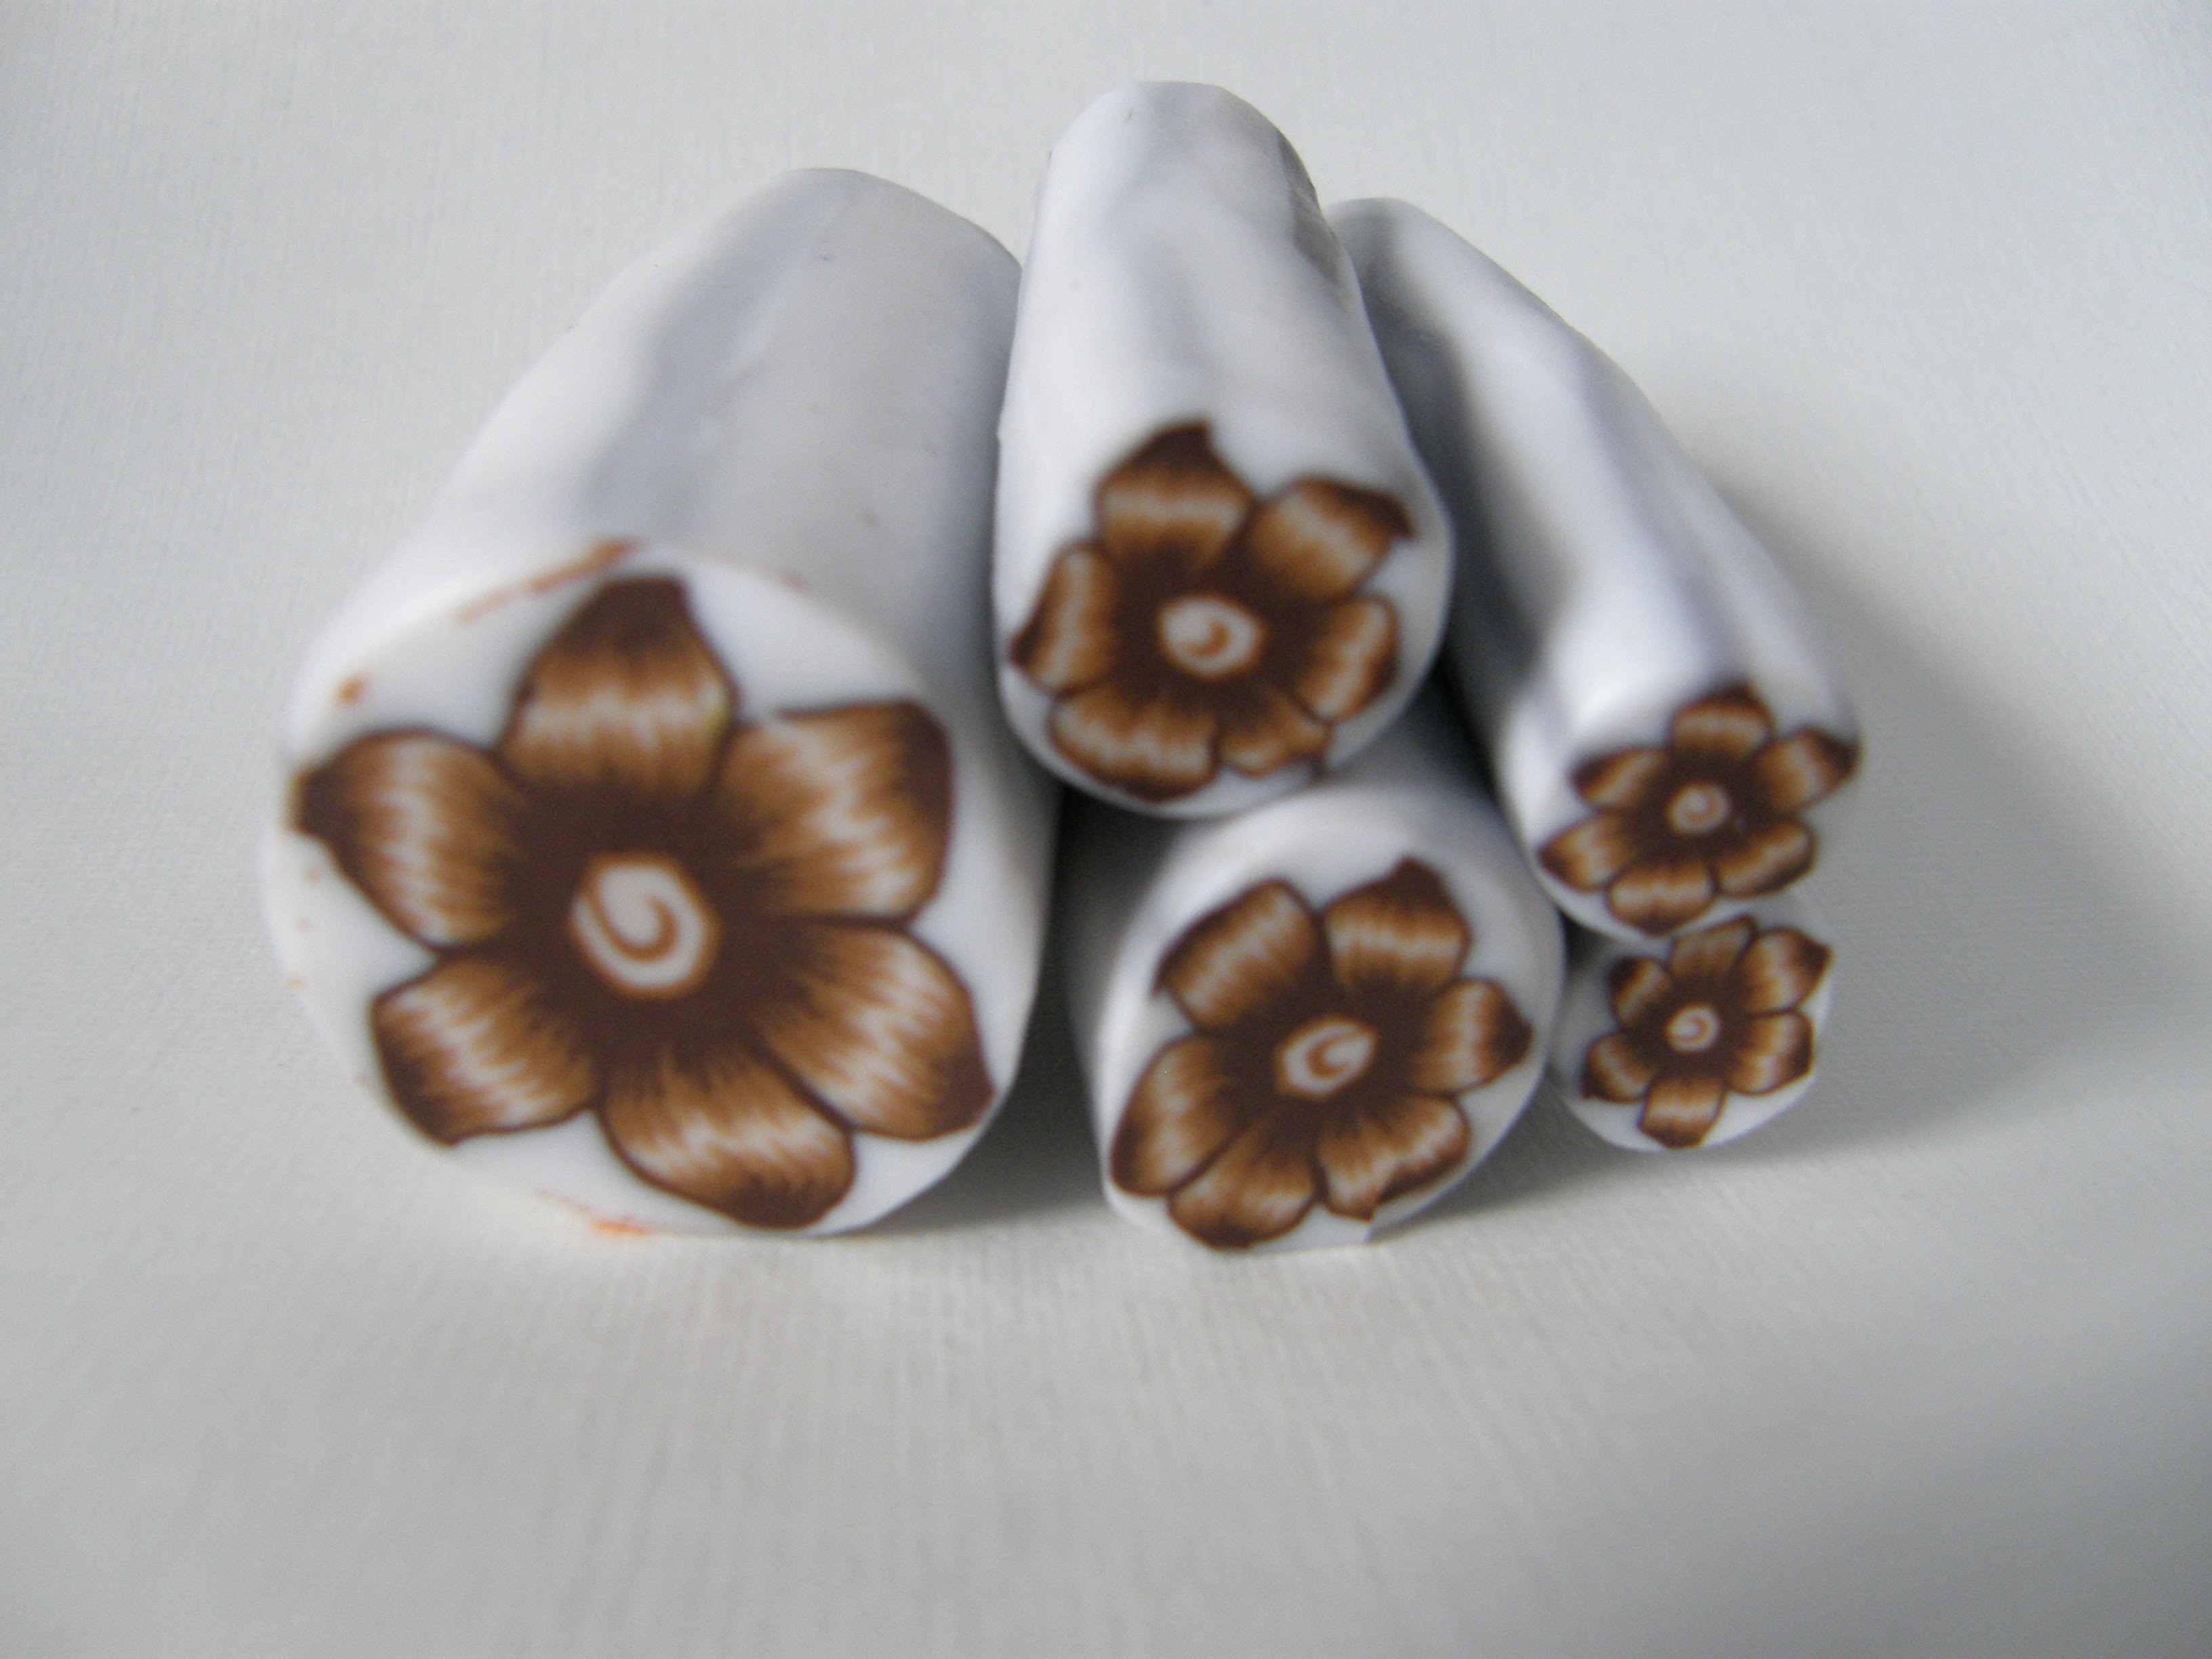 Murrina flor marrón en arcilla polimérica - Polymer clay brown flower cane